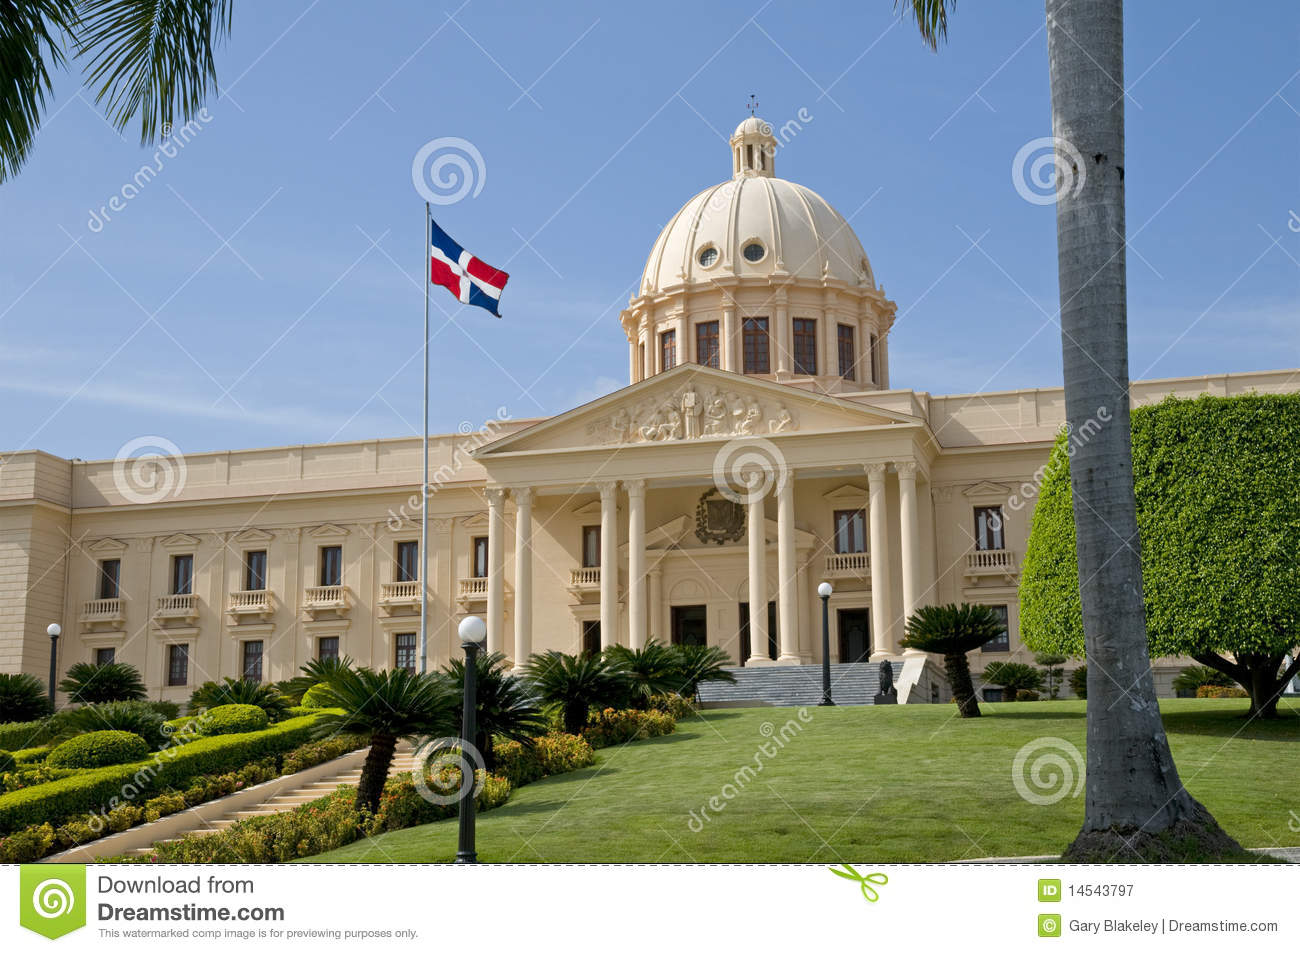 National palace santo domingo royalty free stock for Furniture stores in santiago dominican republic